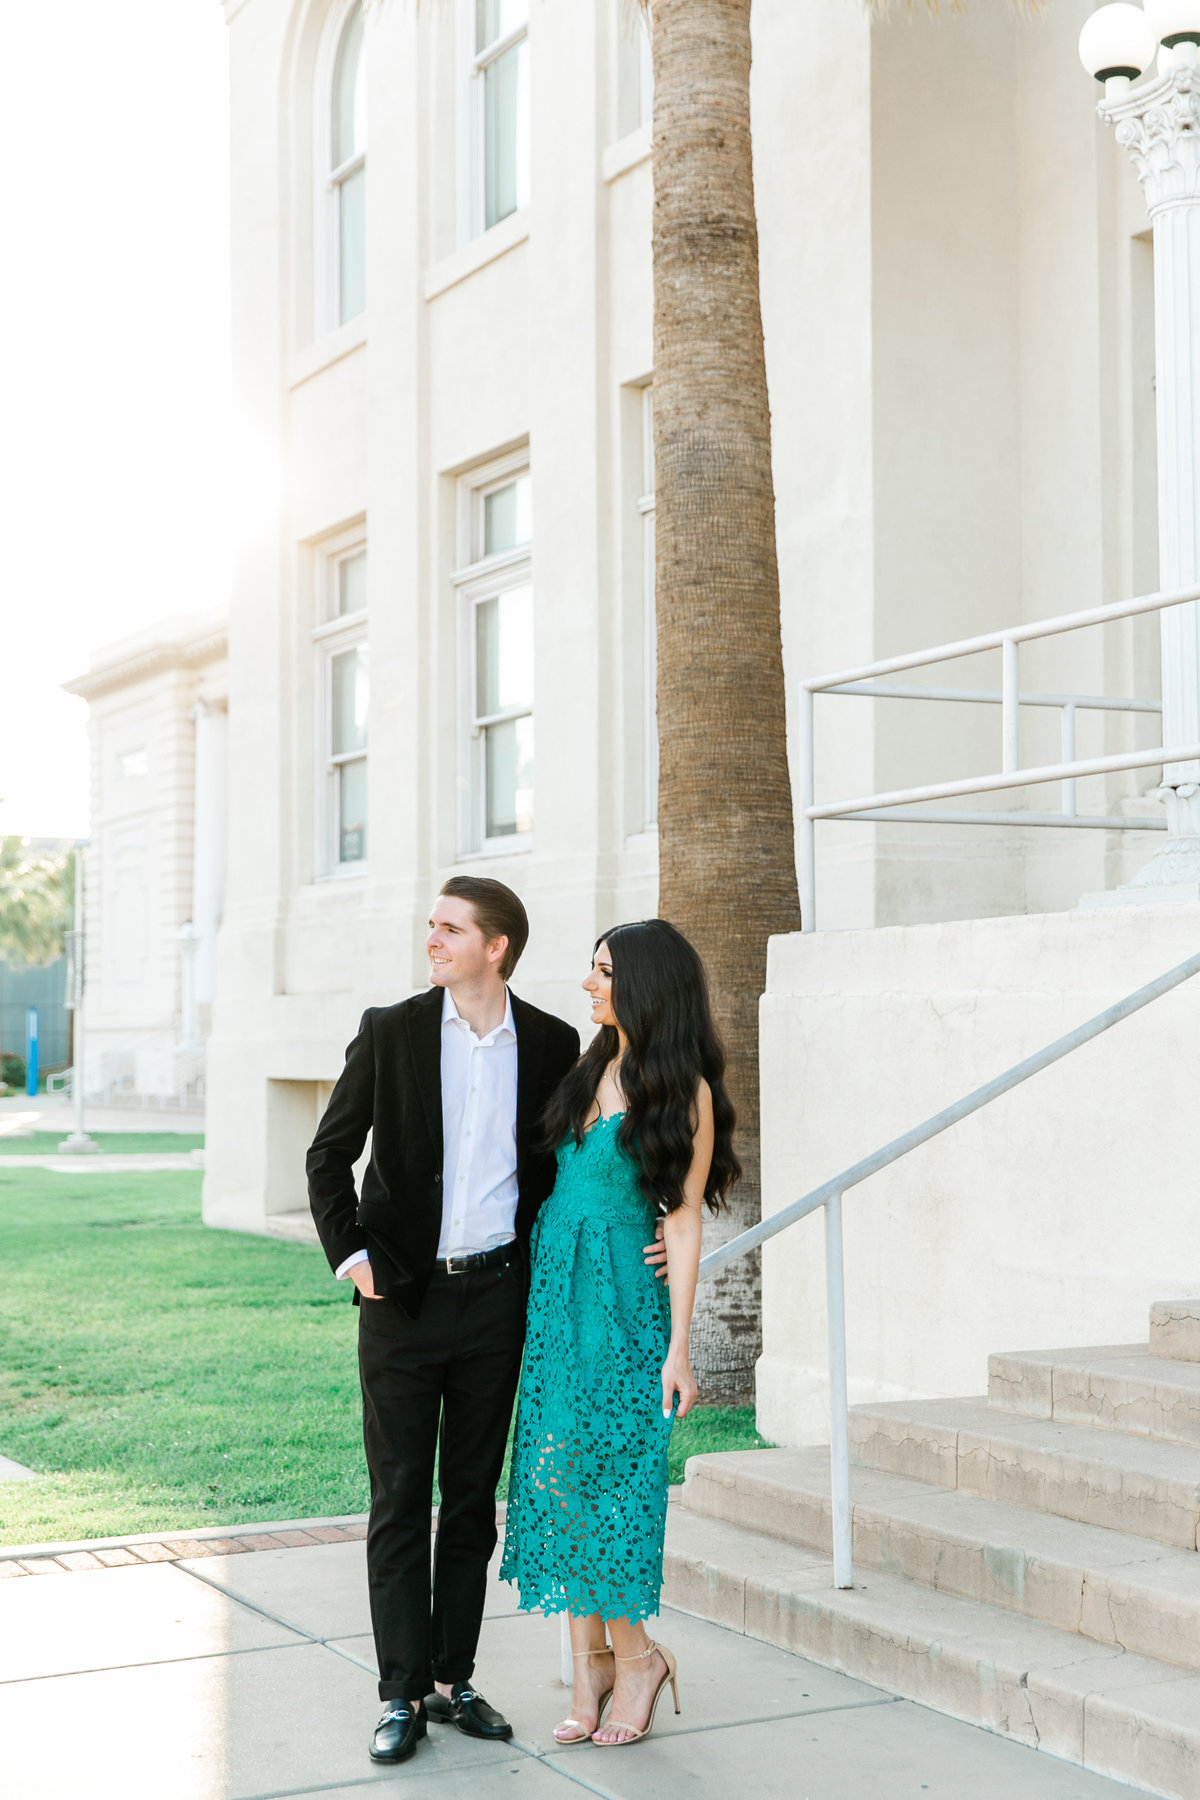 Karlie Colleen Photography - Arizona Engagement City Shoot - Kim & Tim-130